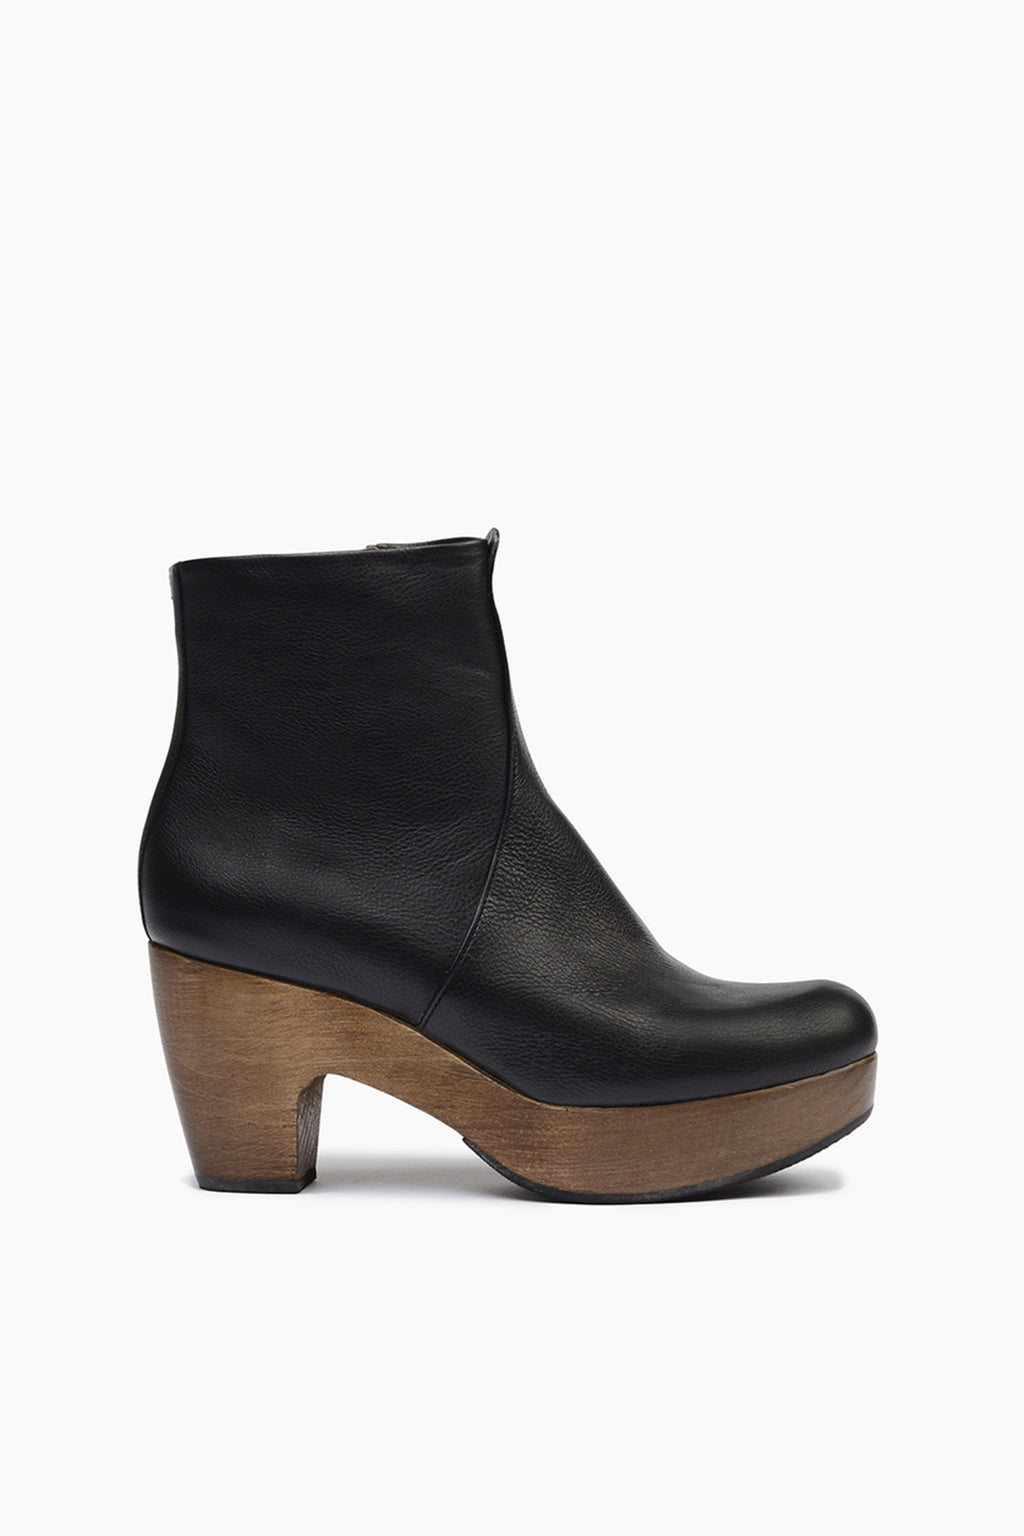 TECLA BOOT IN BLACK